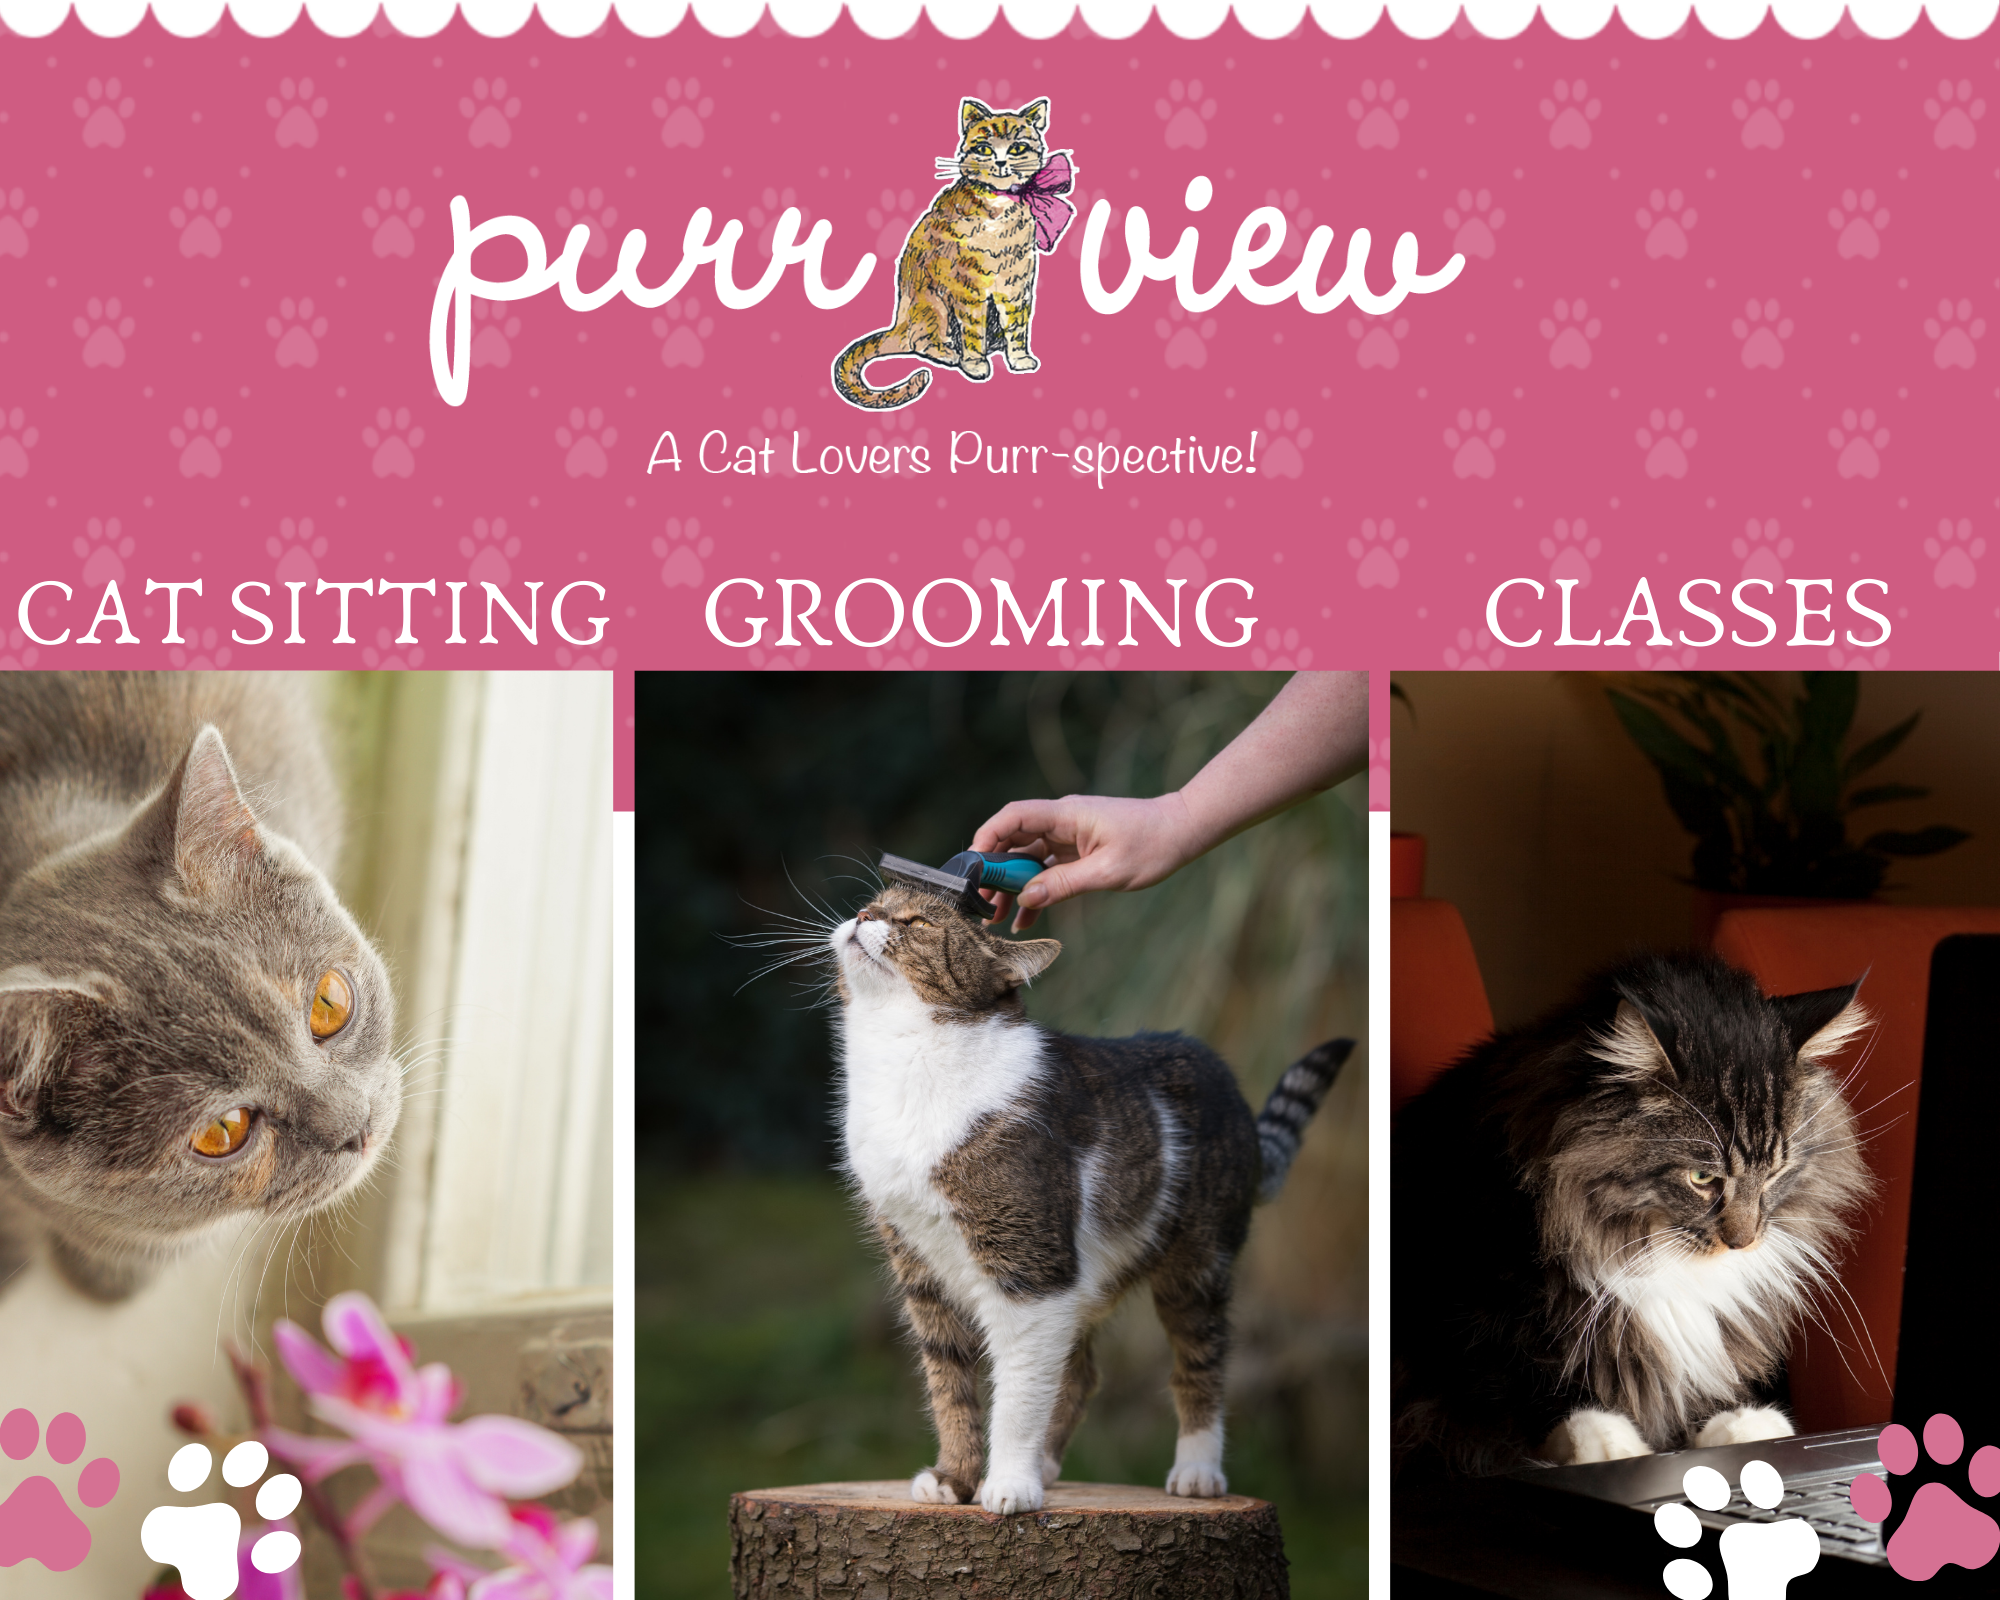 purr view banner with cats